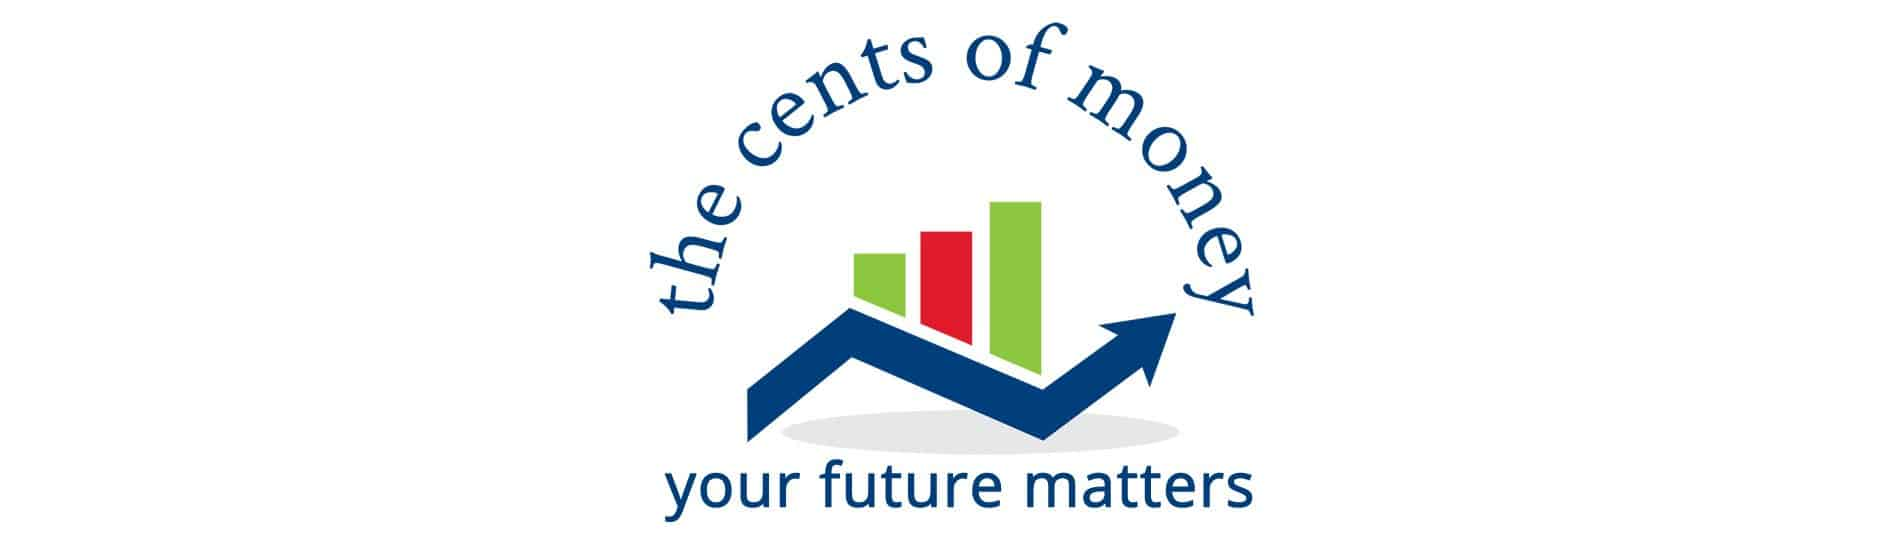 Mortgages Archives - the cents of money